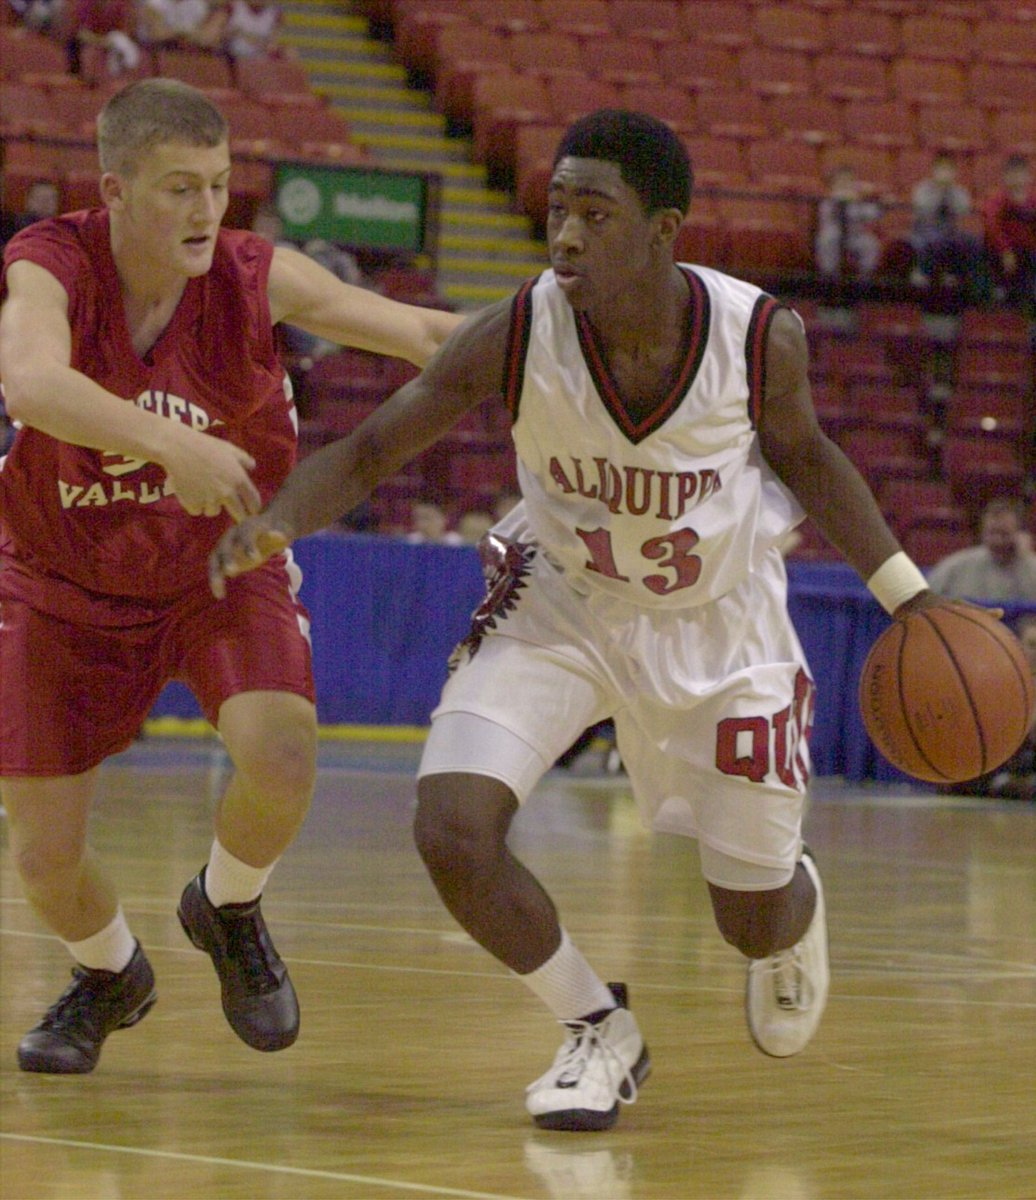 Looking at some old hoop stats. WPIAL's leading scorer in 2003 was this Revis Island kid. @Revis24. 26.2 ppg https://t.co/CvVOxPRqFG